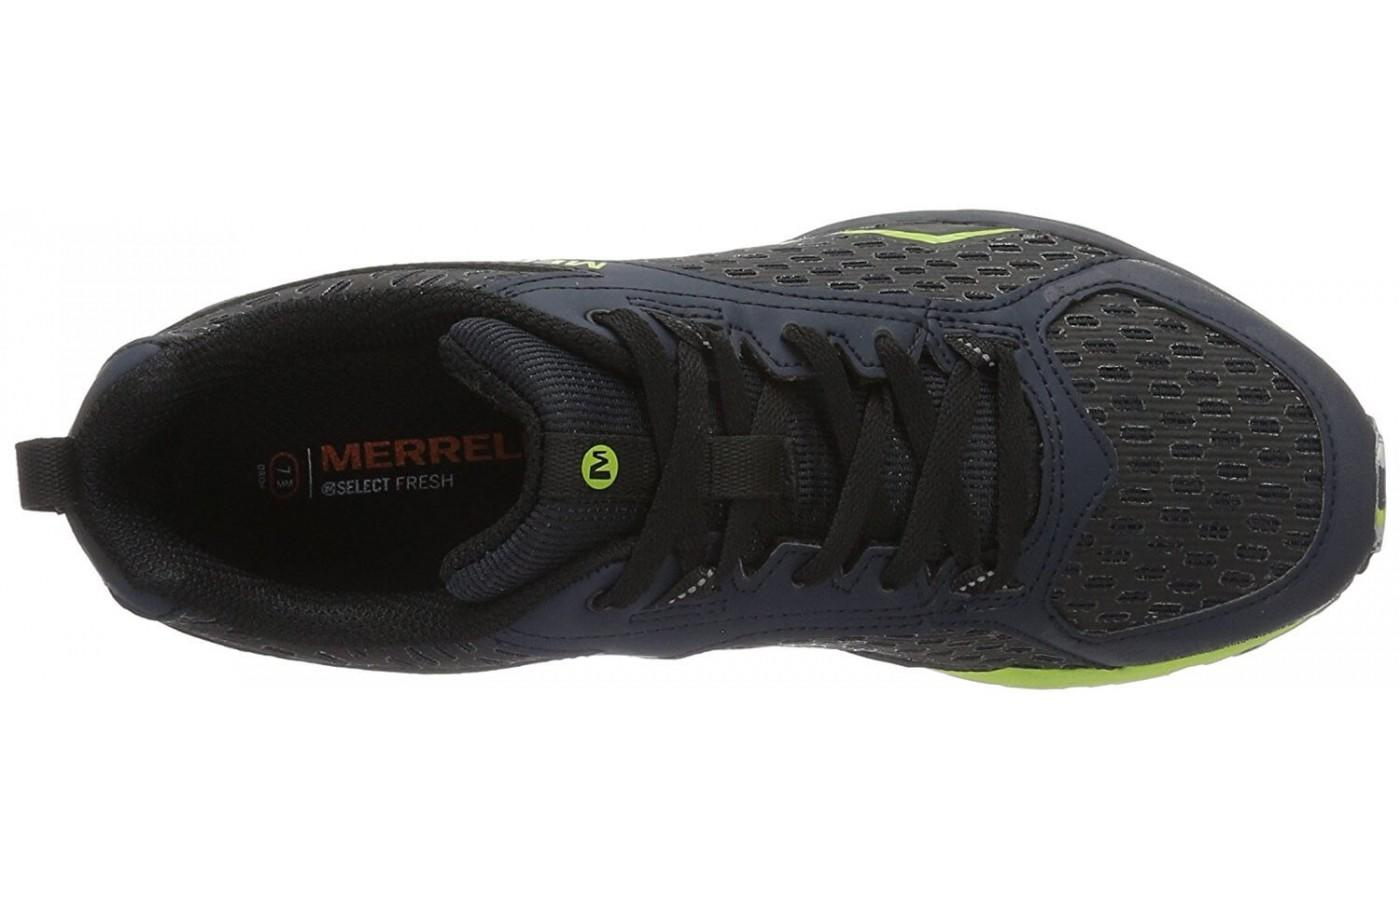 Merrell All Out Crush Tough Mudder has an upper that's breathable and protective